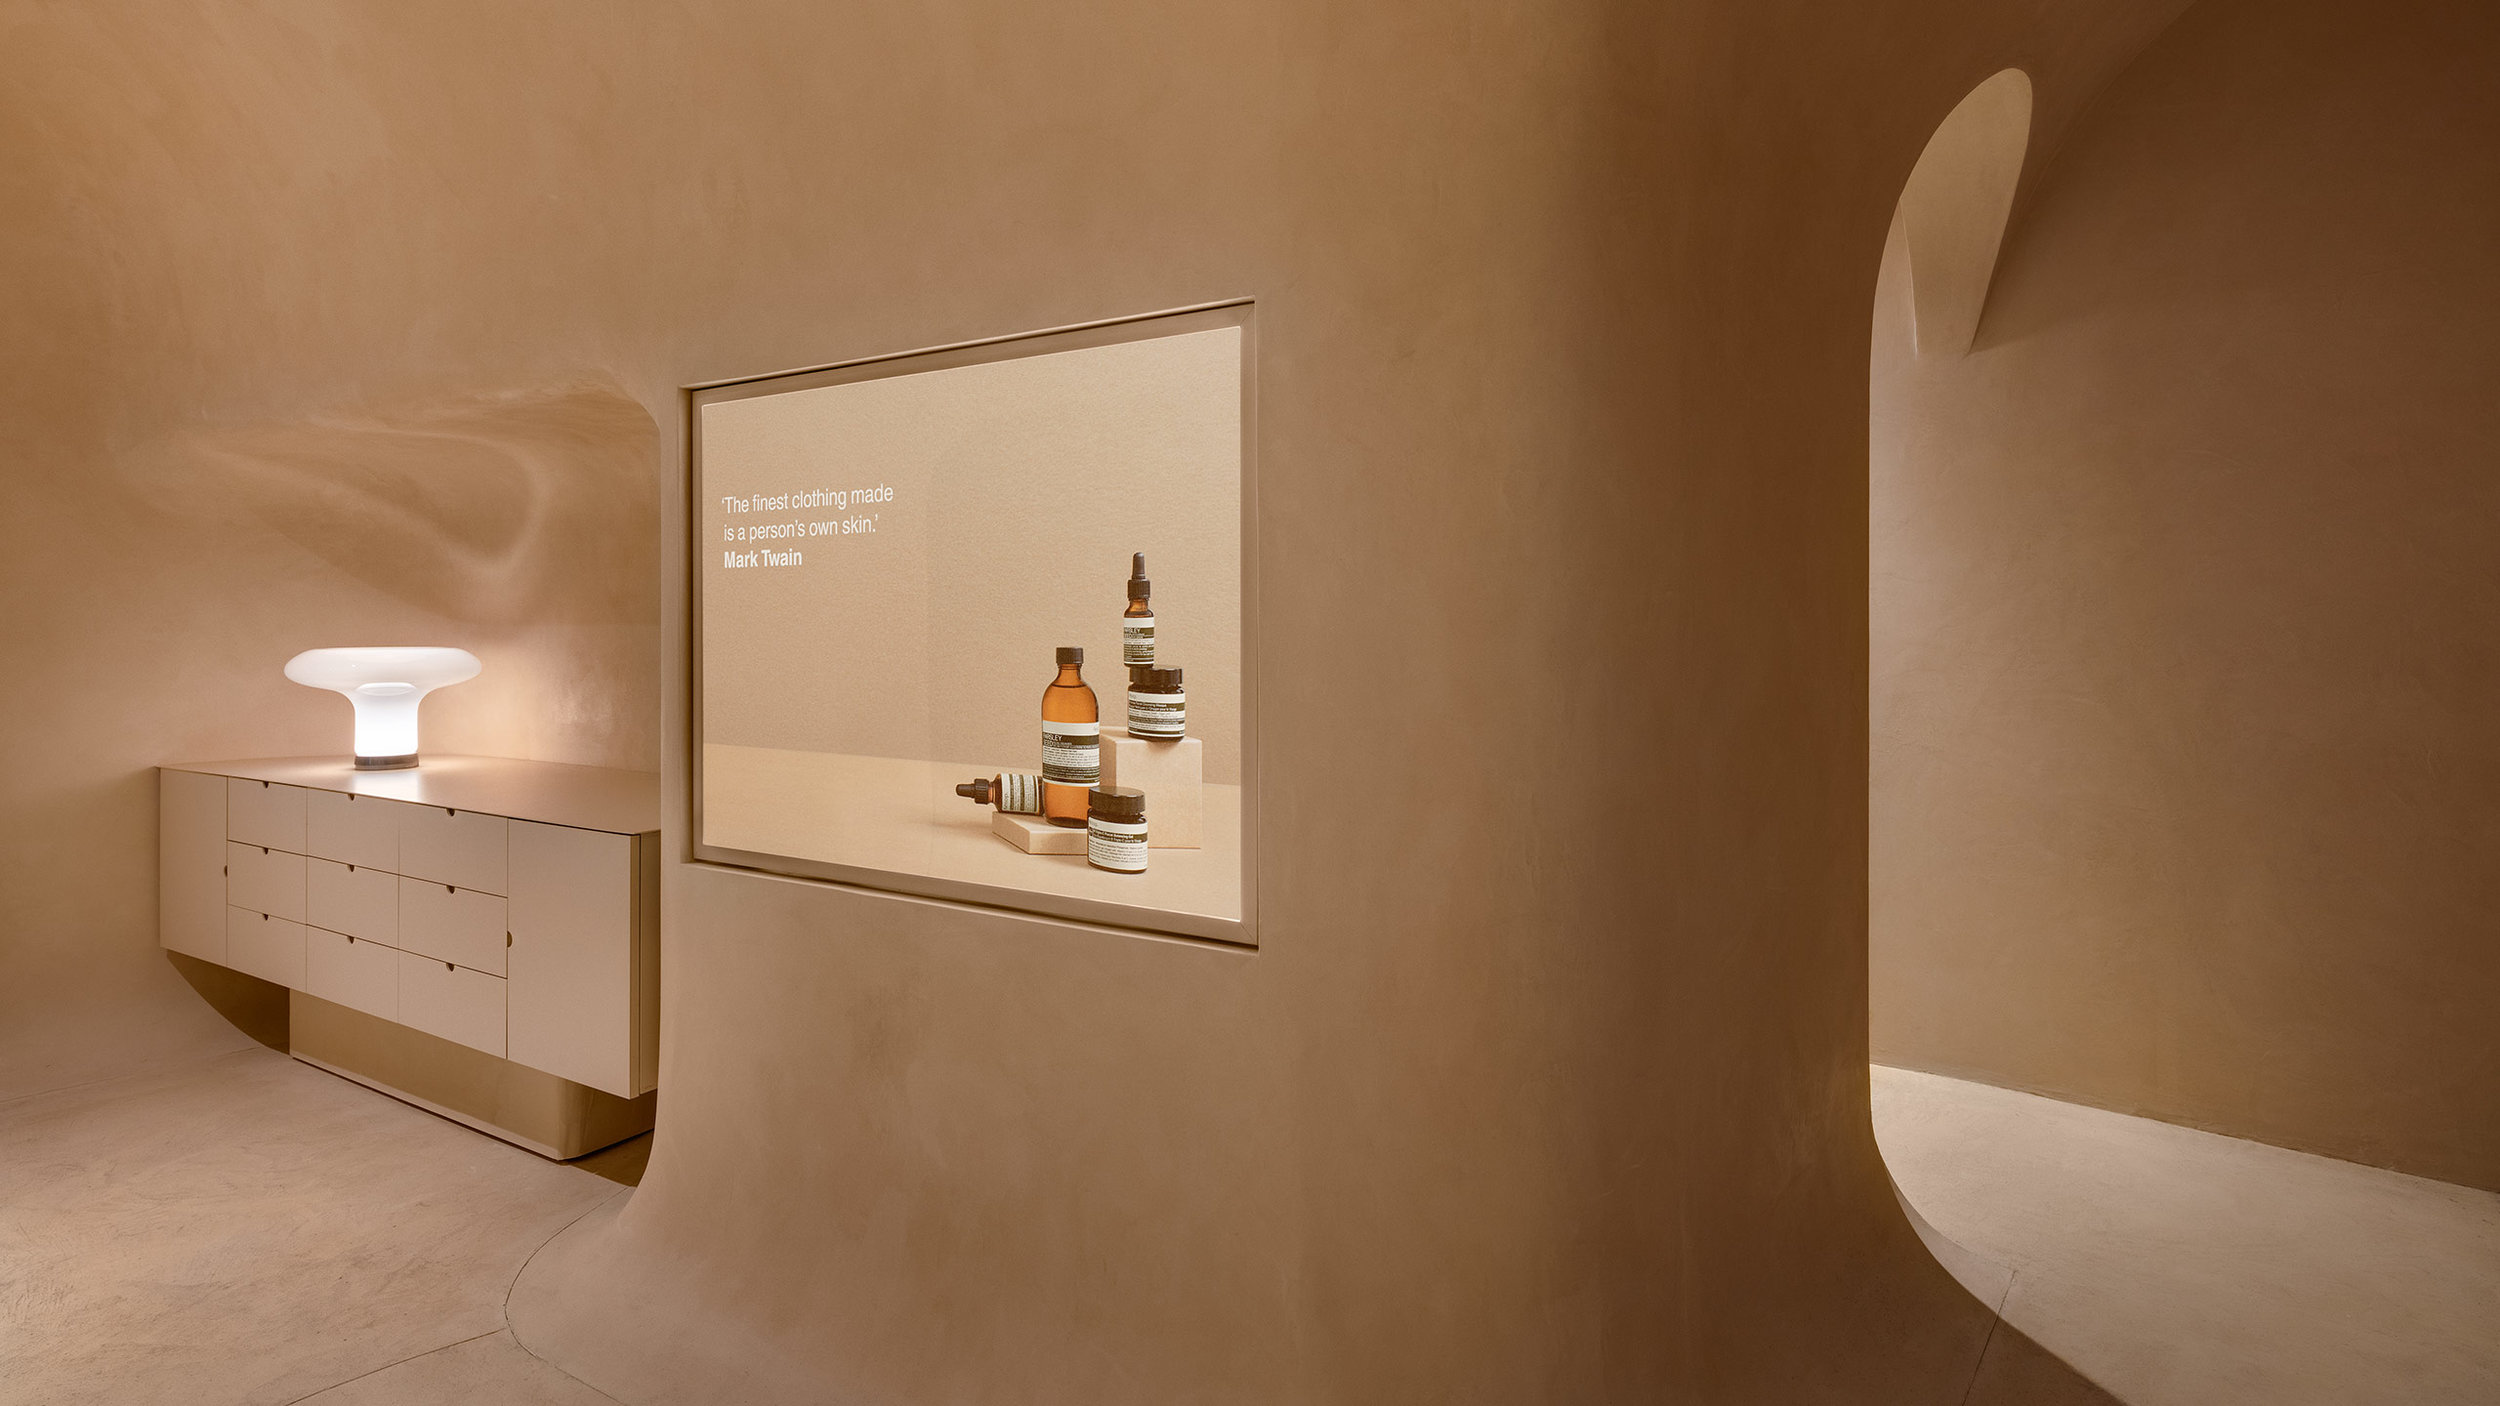 Aesop-US-Store-Houston-Galleria-Carousel-2-Desktop-2560x1440px.jpg